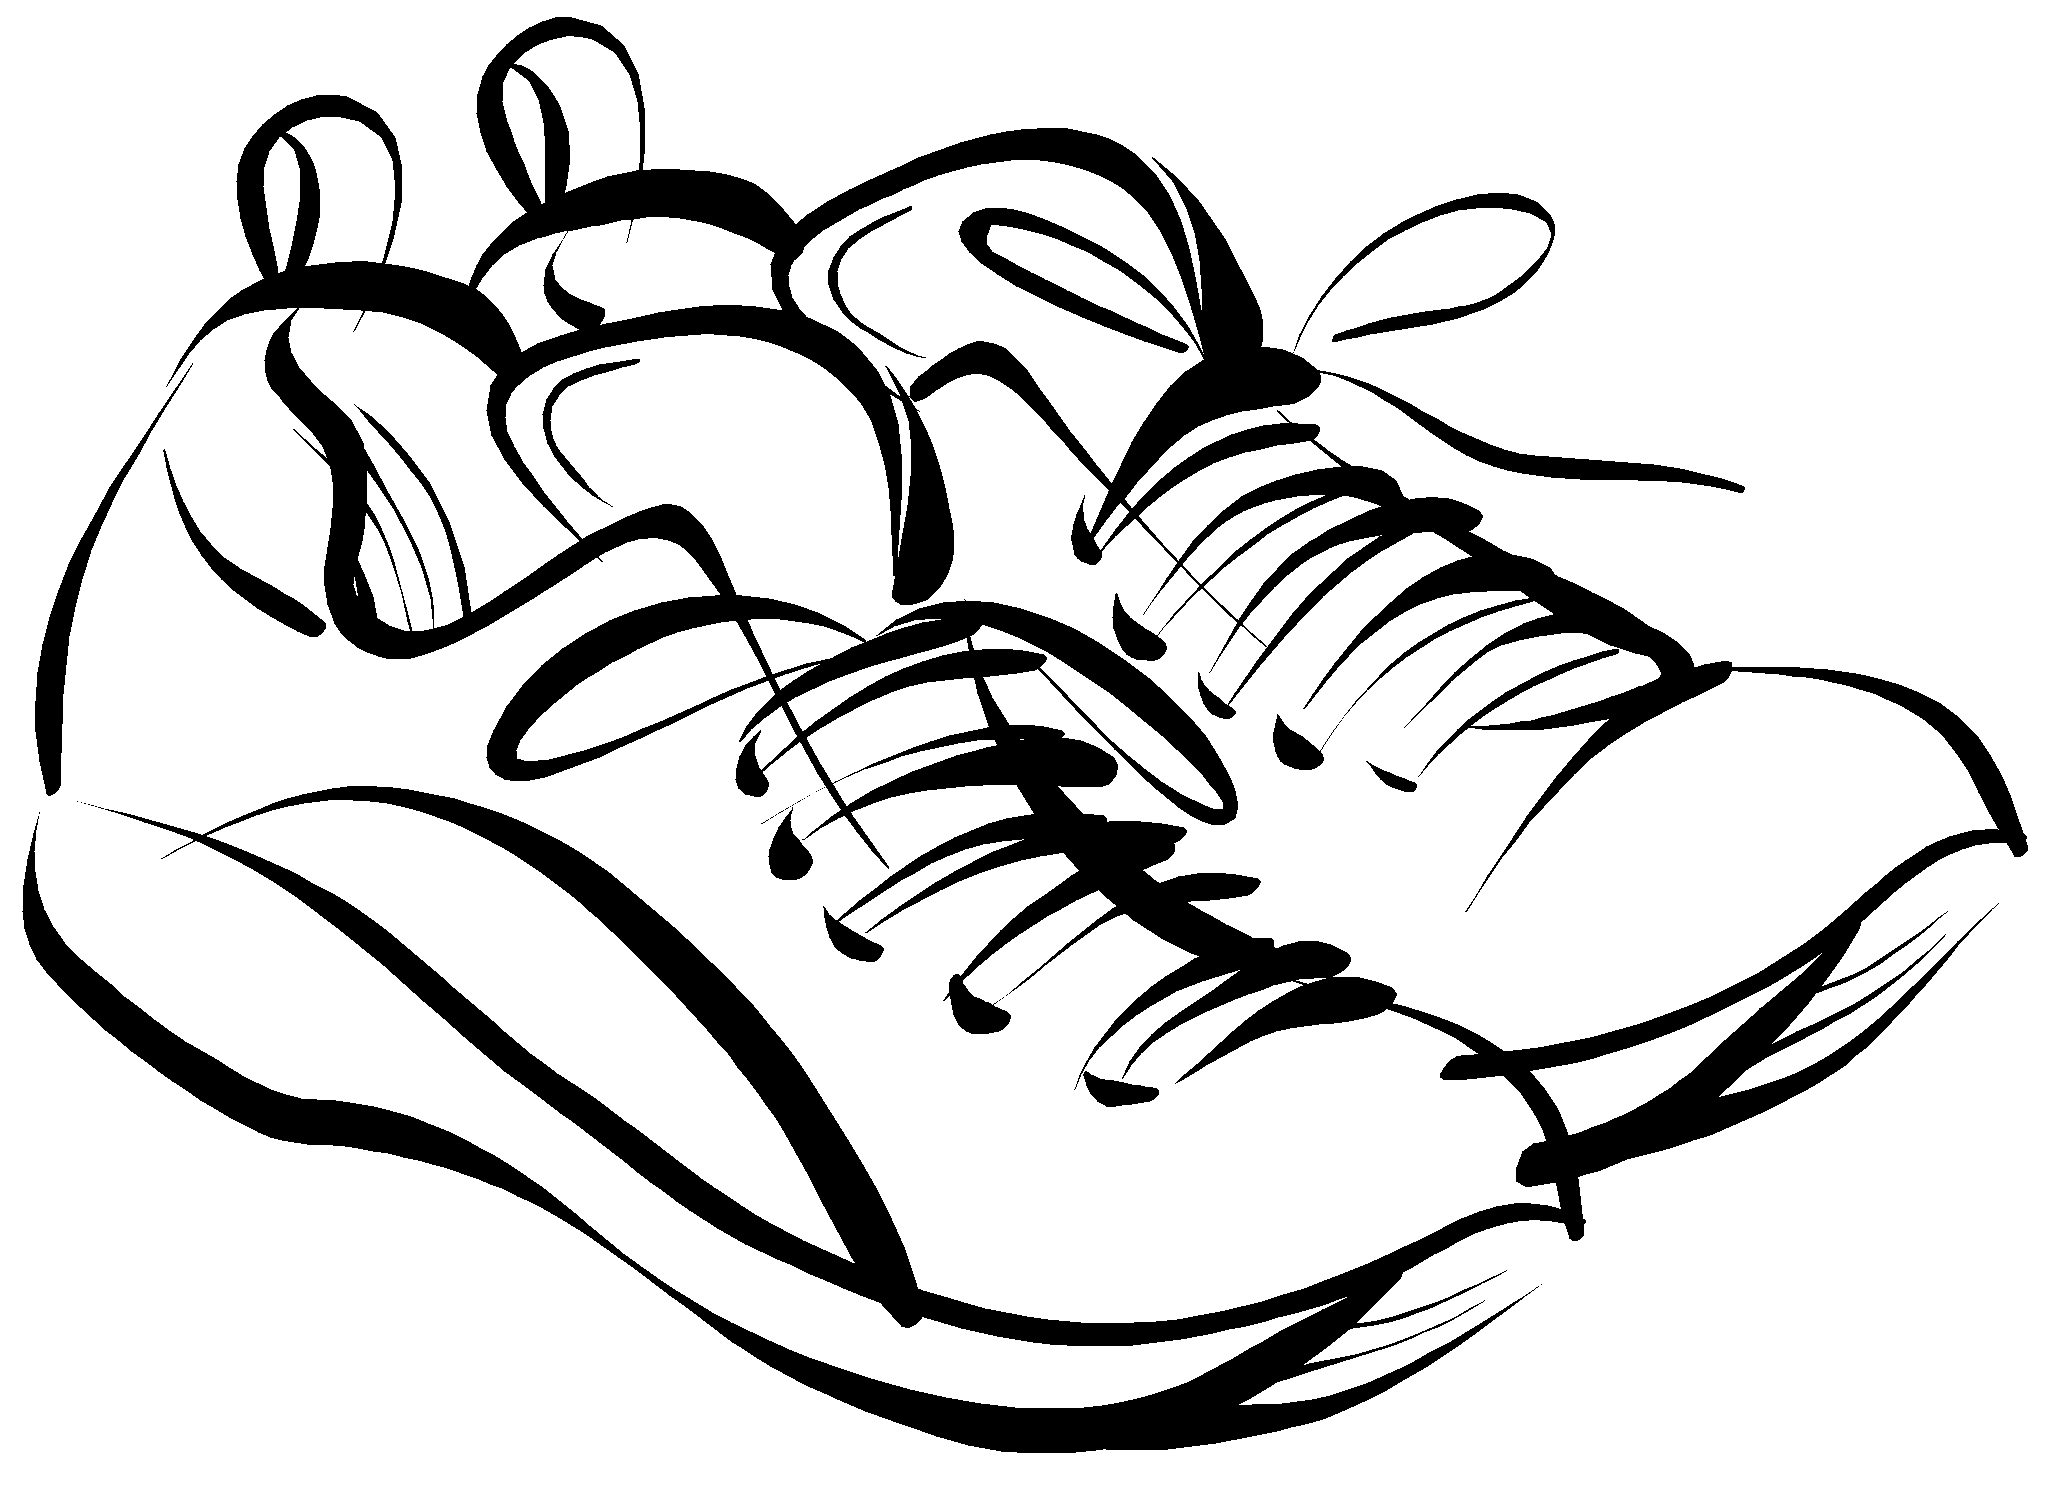 Nike Running Shoes Clipart Free Clipart Images 3 Image